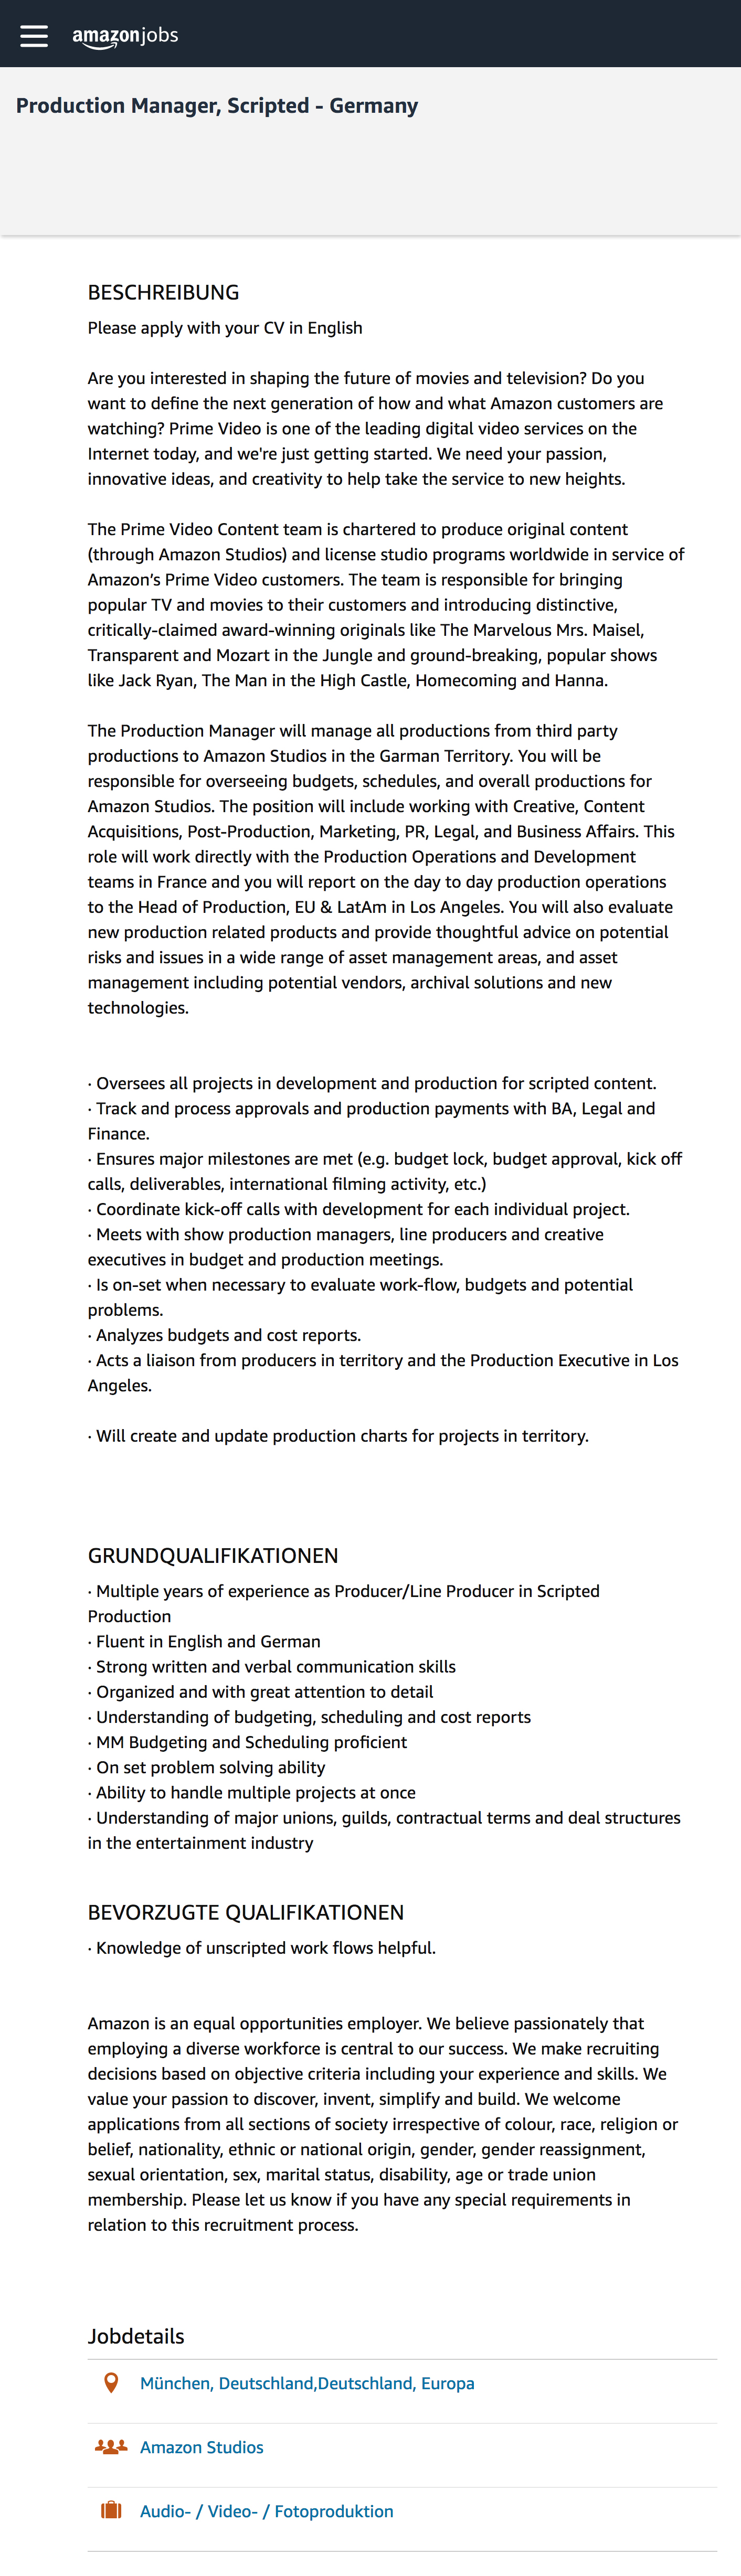 Production Manager, Scripted - Germany (mf/d)